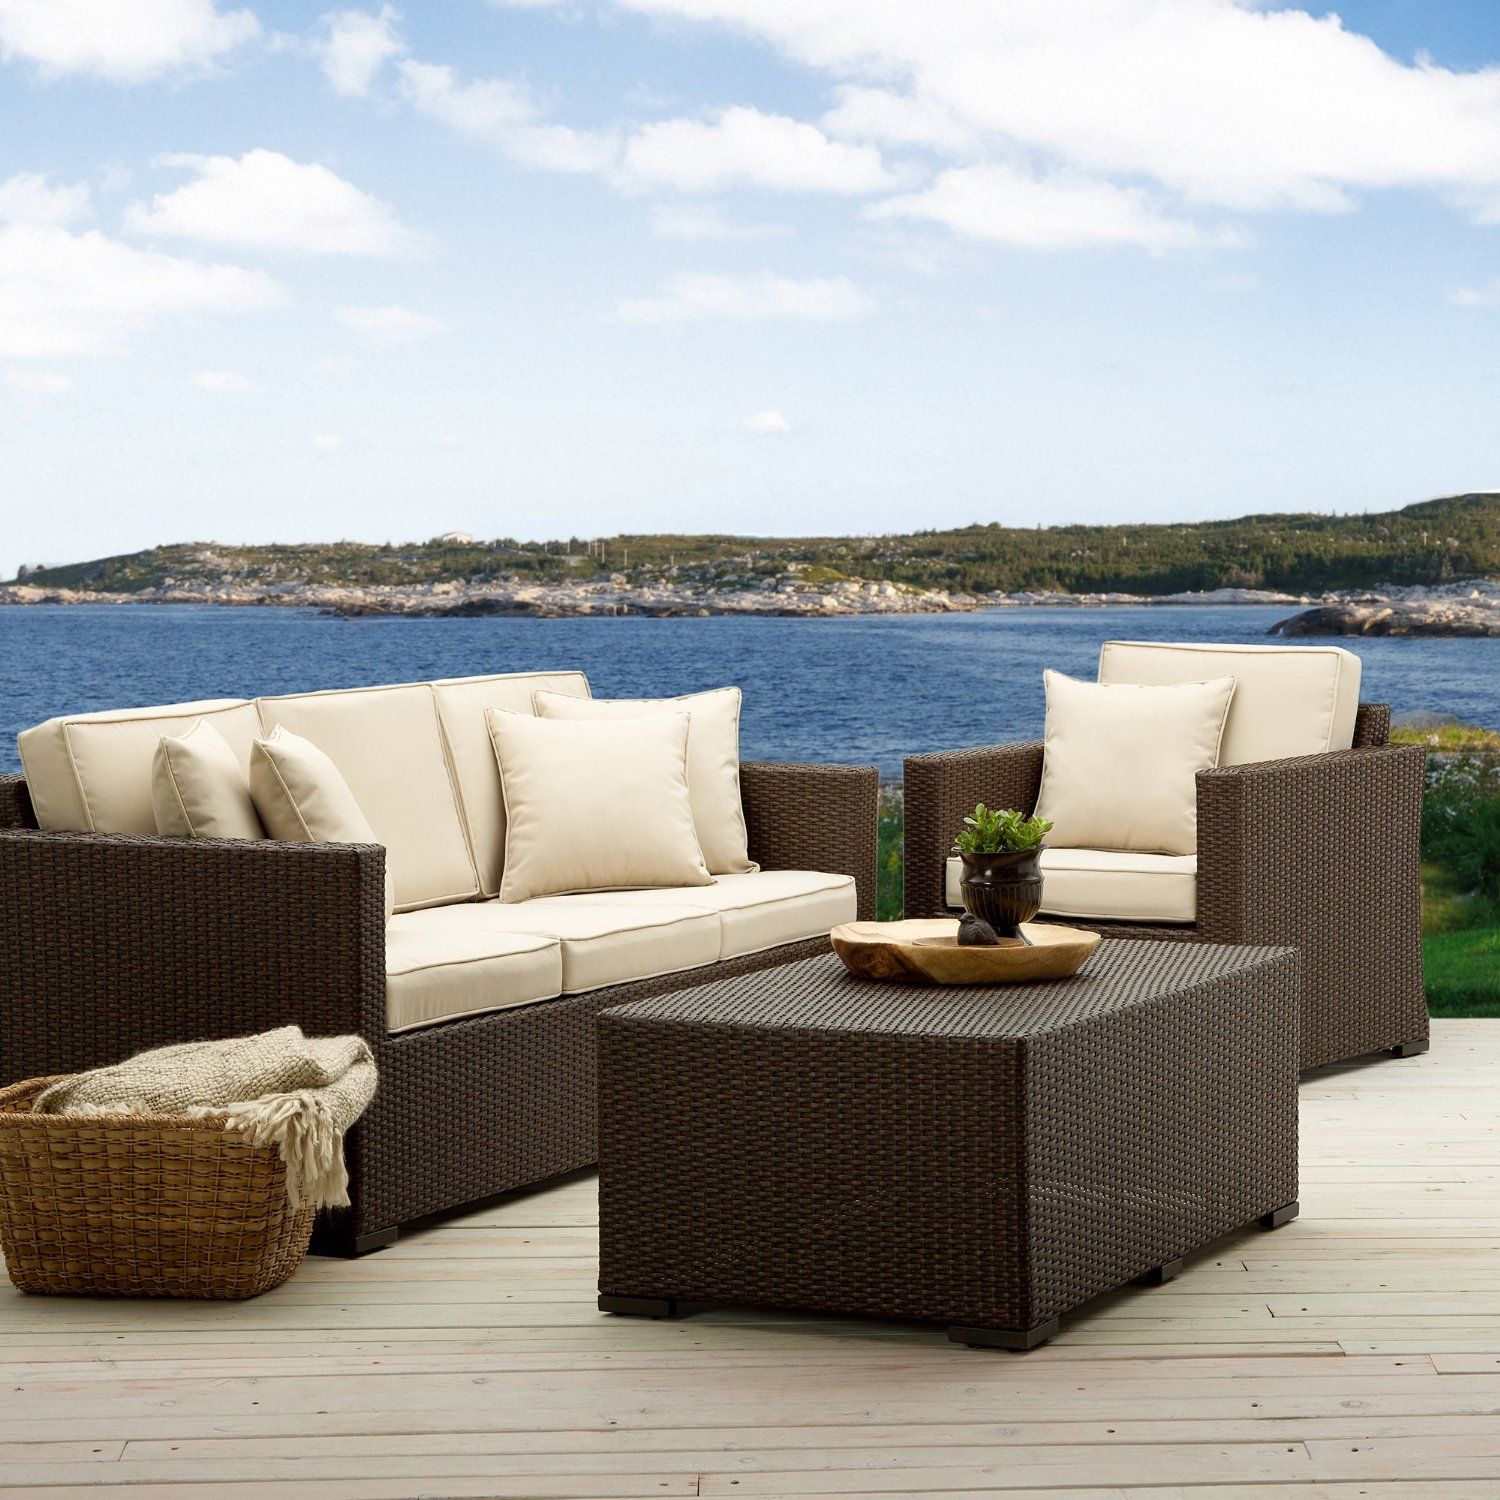 Strathwood griffen poltroncina in vimini per tutti i for Outdoor furniture amazon